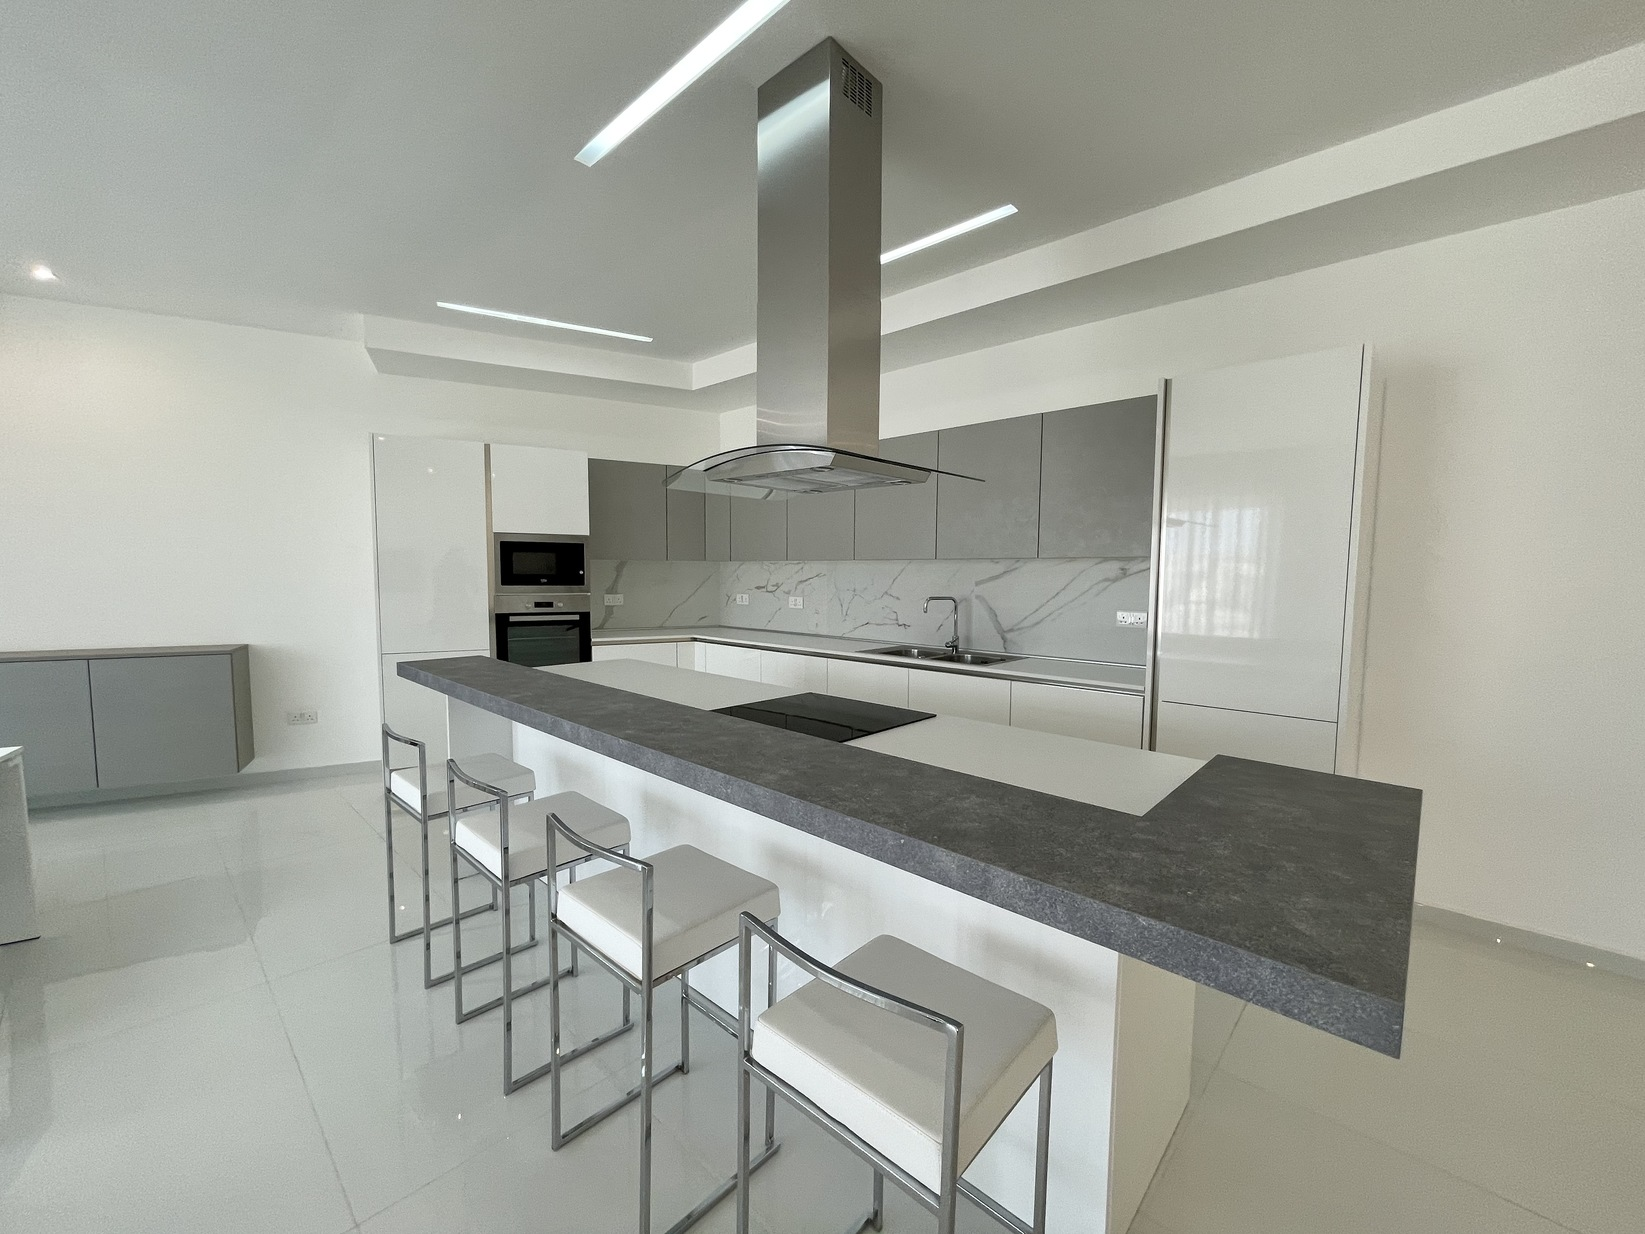 3 bed Apartment For Rent in Zejtun, Zejtun - thumb 7